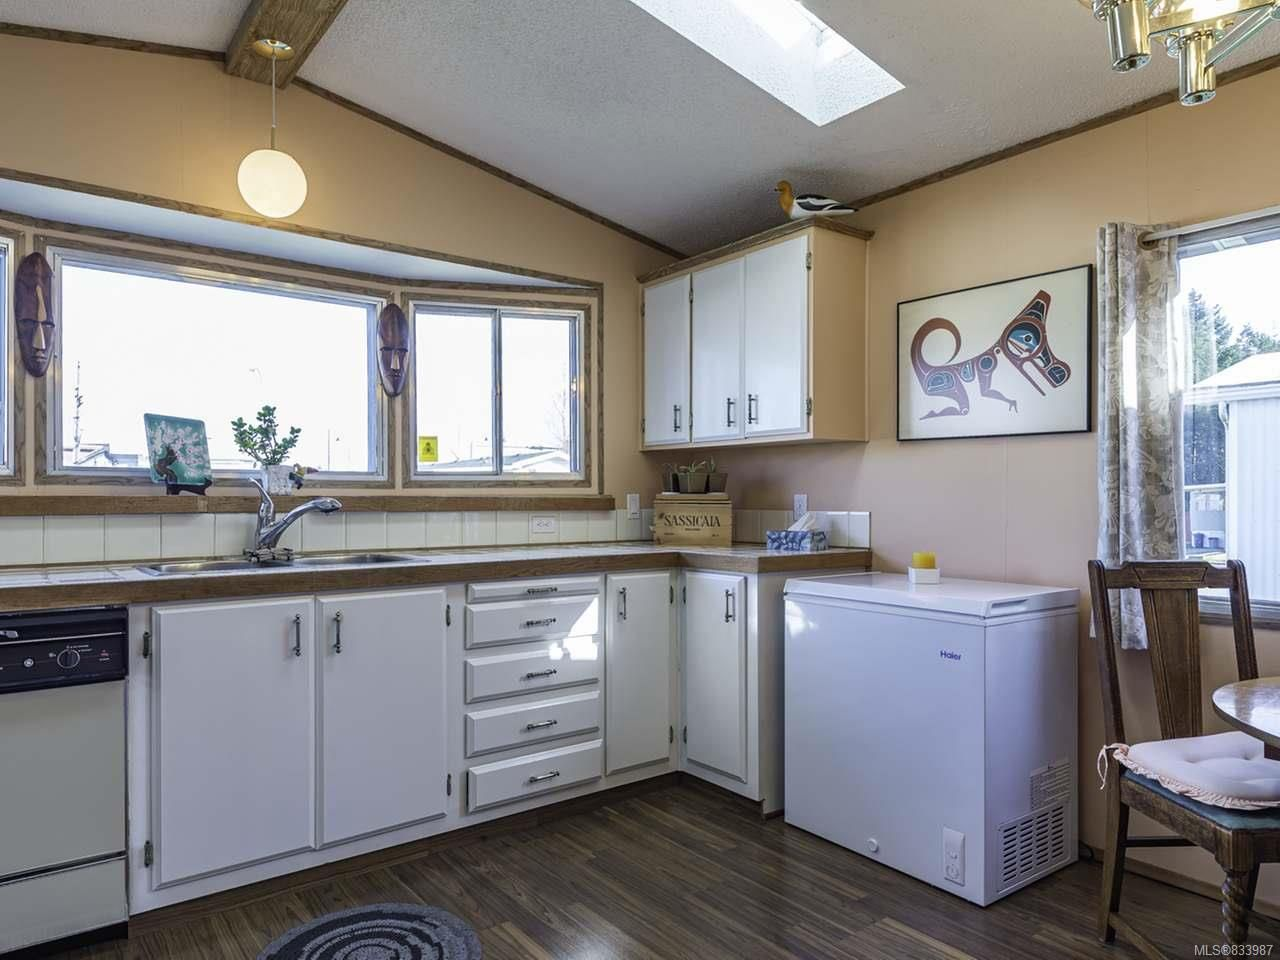 Photo 18: Photos: 64 390 Cowichan Ave in COURTENAY: CV Courtenay East Manufactured Home for sale (Comox Valley)  : MLS®# 833987